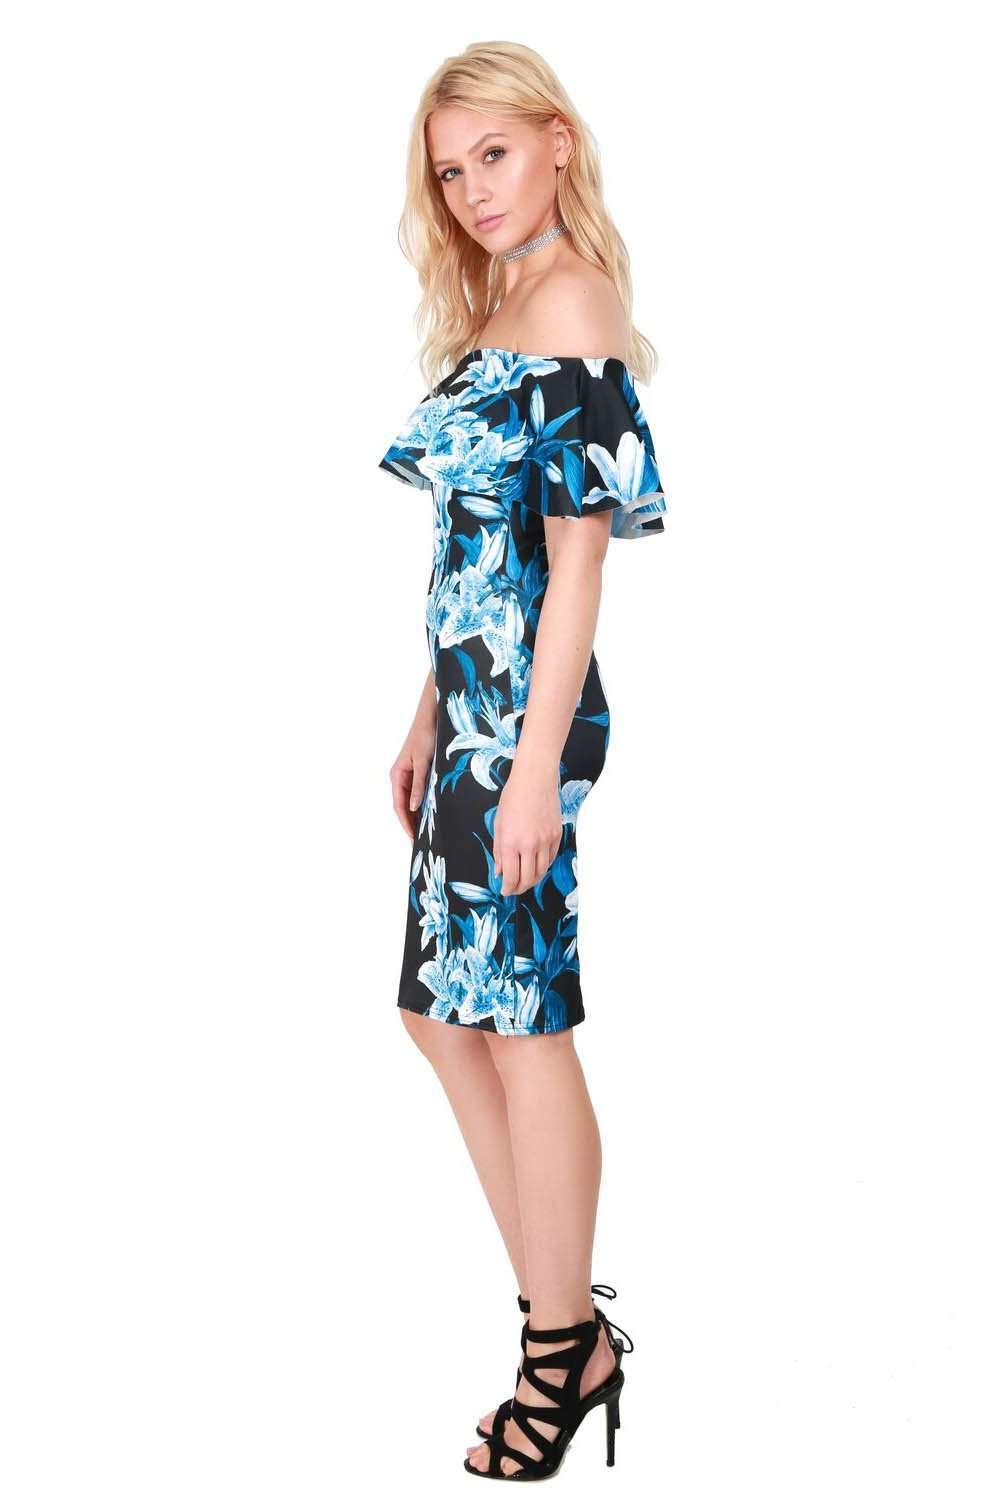 Off Shoulder Blue Floral Midi Bodycon Dress - bejealous-com